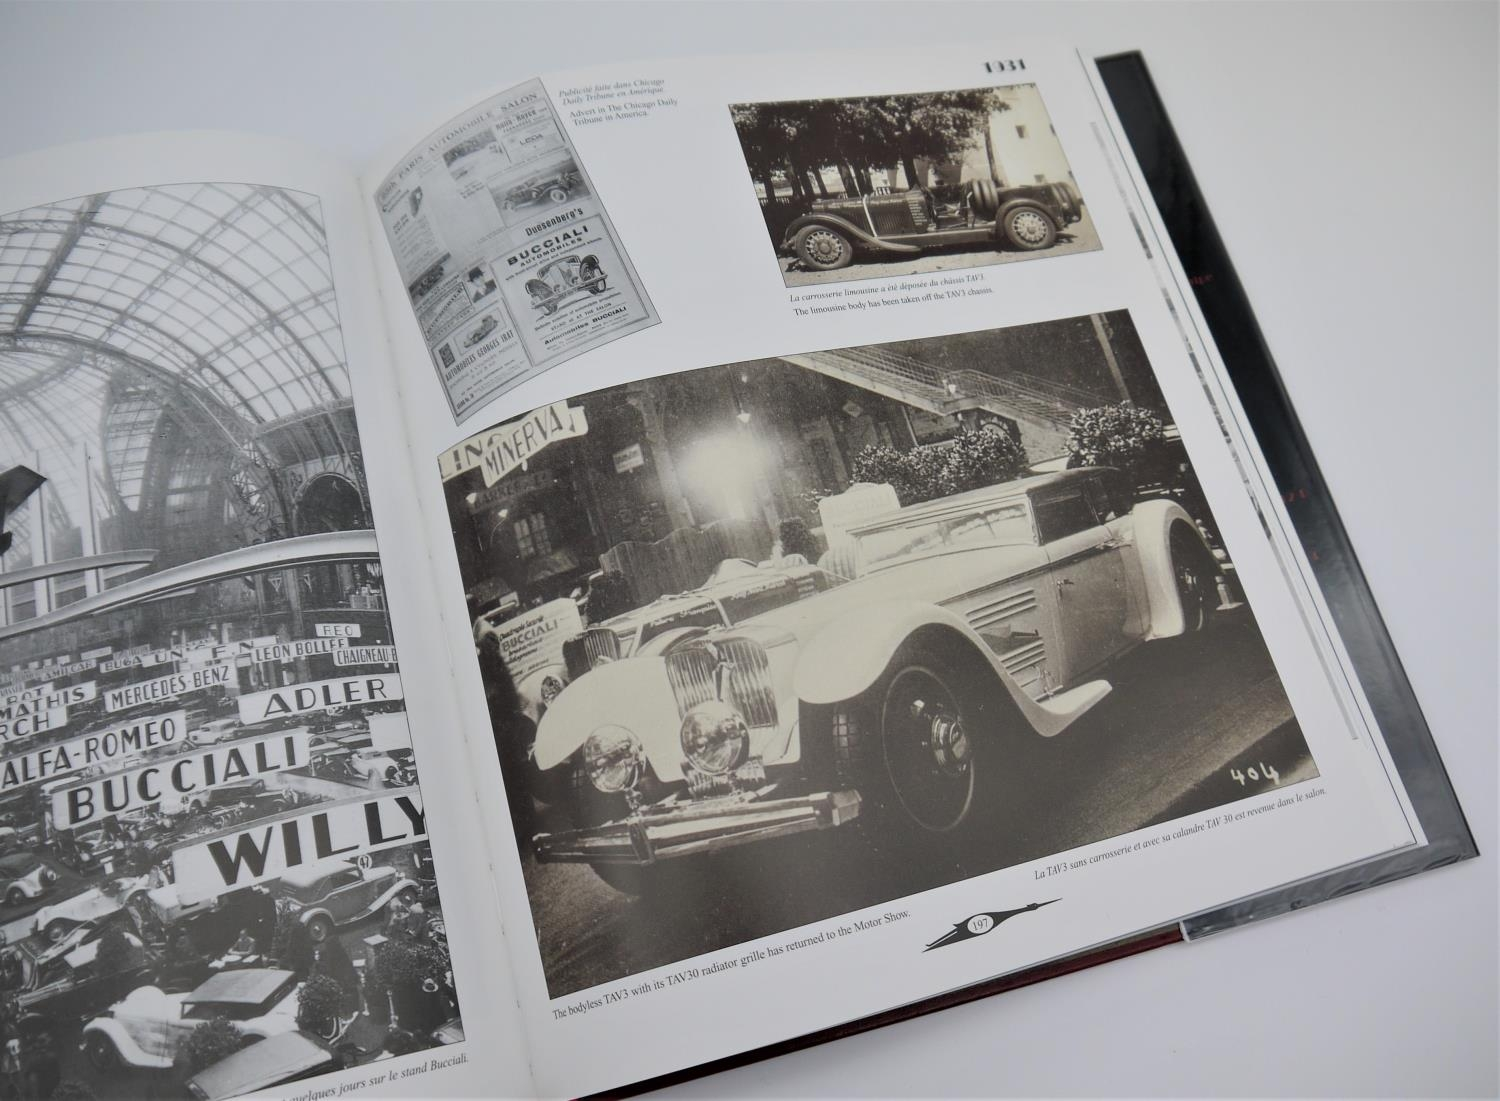 CHRISTIAN HUET: BUCCIALI story of the bucciali brothers who built a few fascinating sports cars in - Image 3 of 3